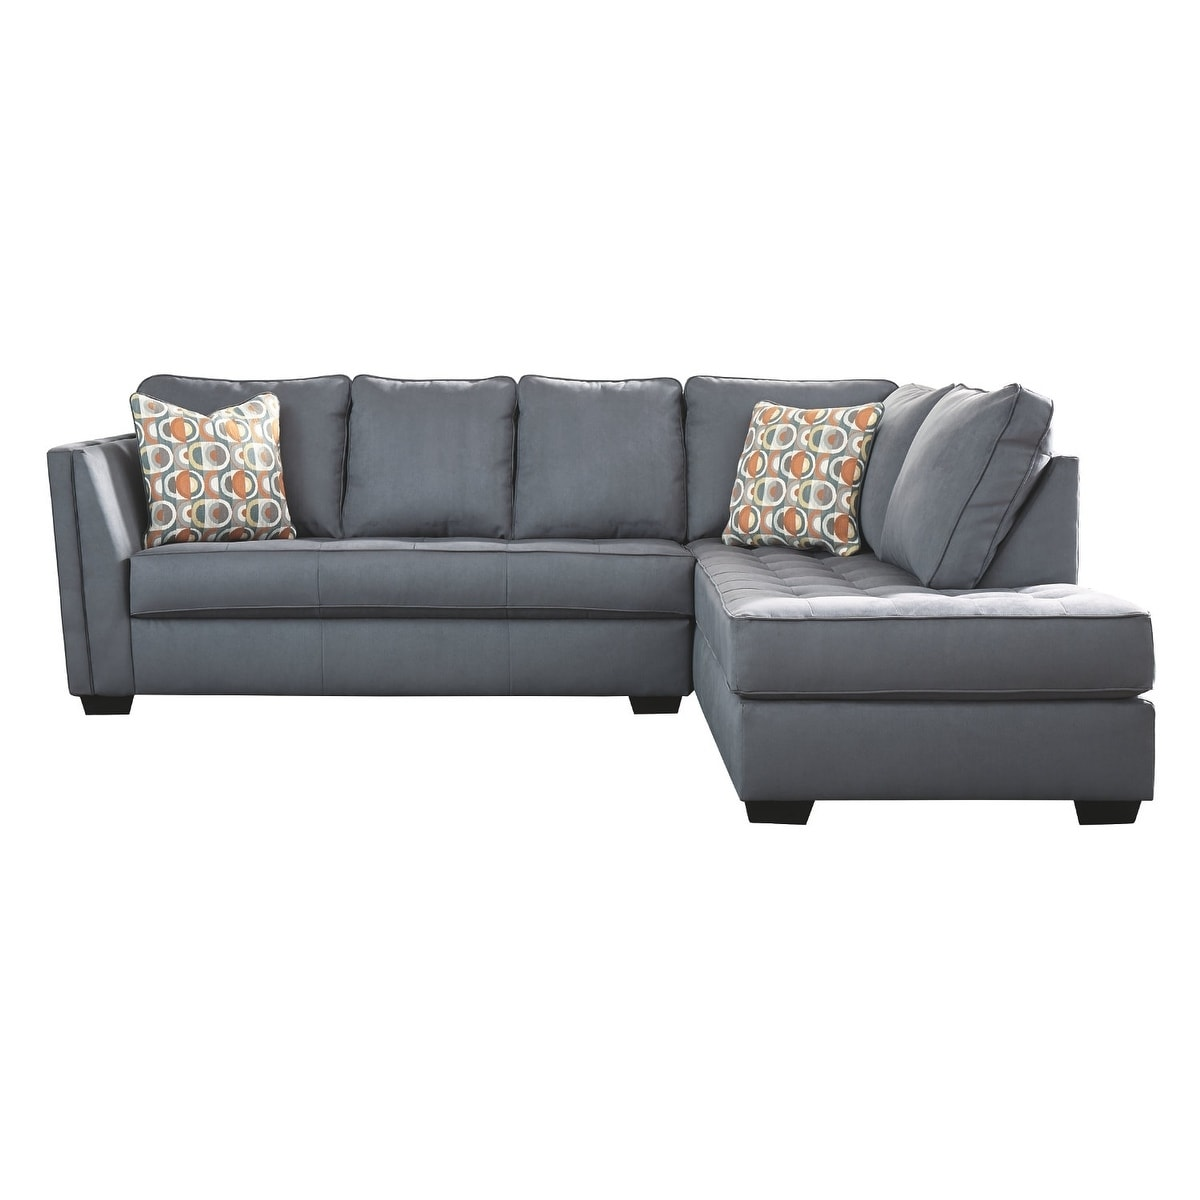 Shop Filone 2-Piece Sectional - RAF Corner Chaise and LAF Sofa ...